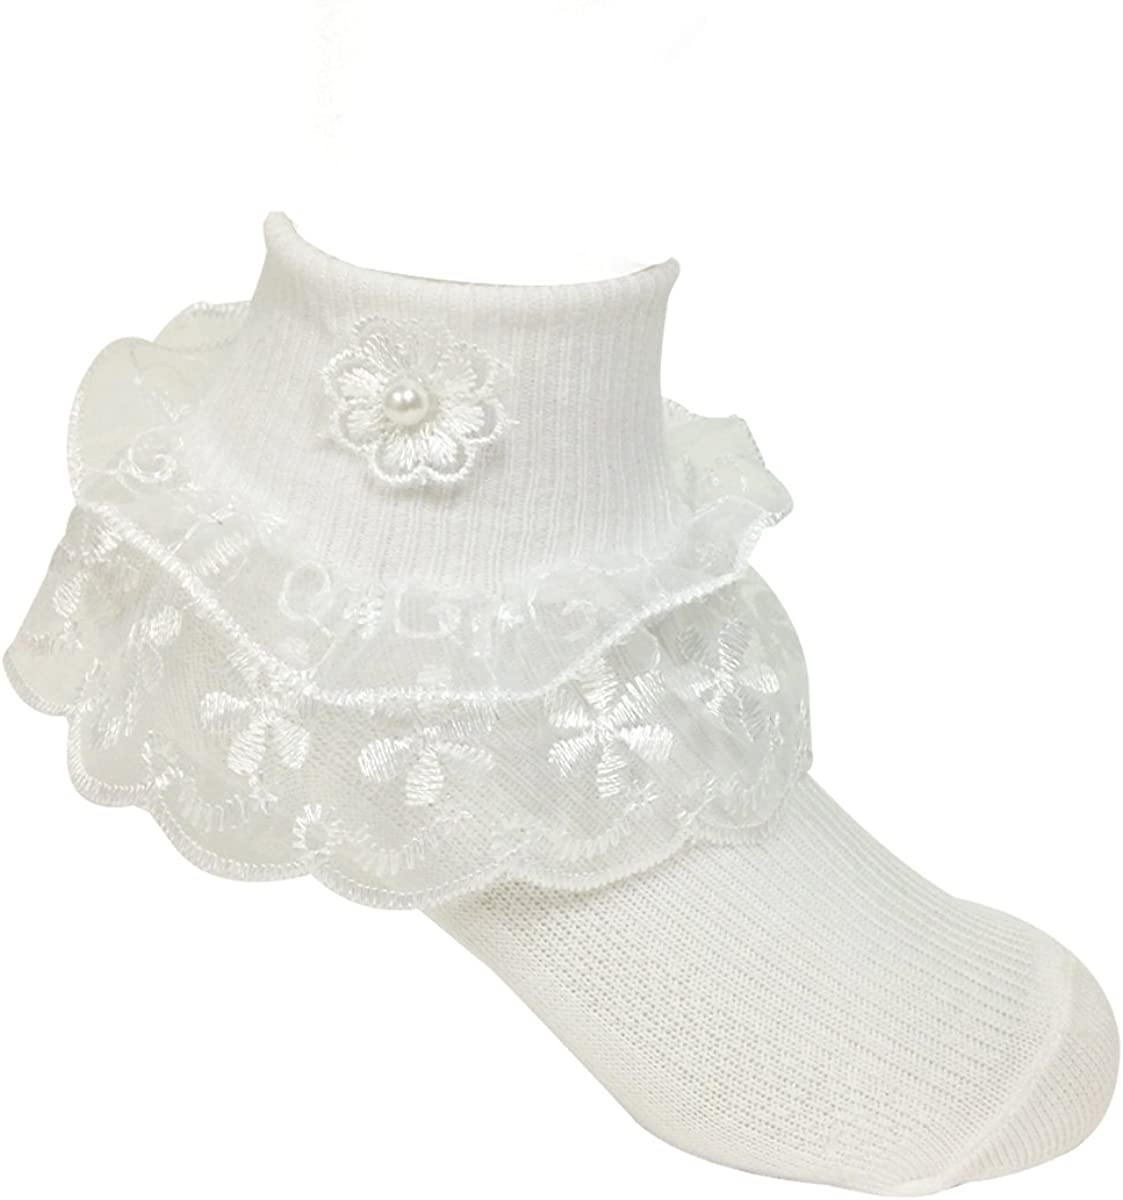 Allydrew Lil Miss Daisy Double Layer Lace Ruffle Socks Set of 2